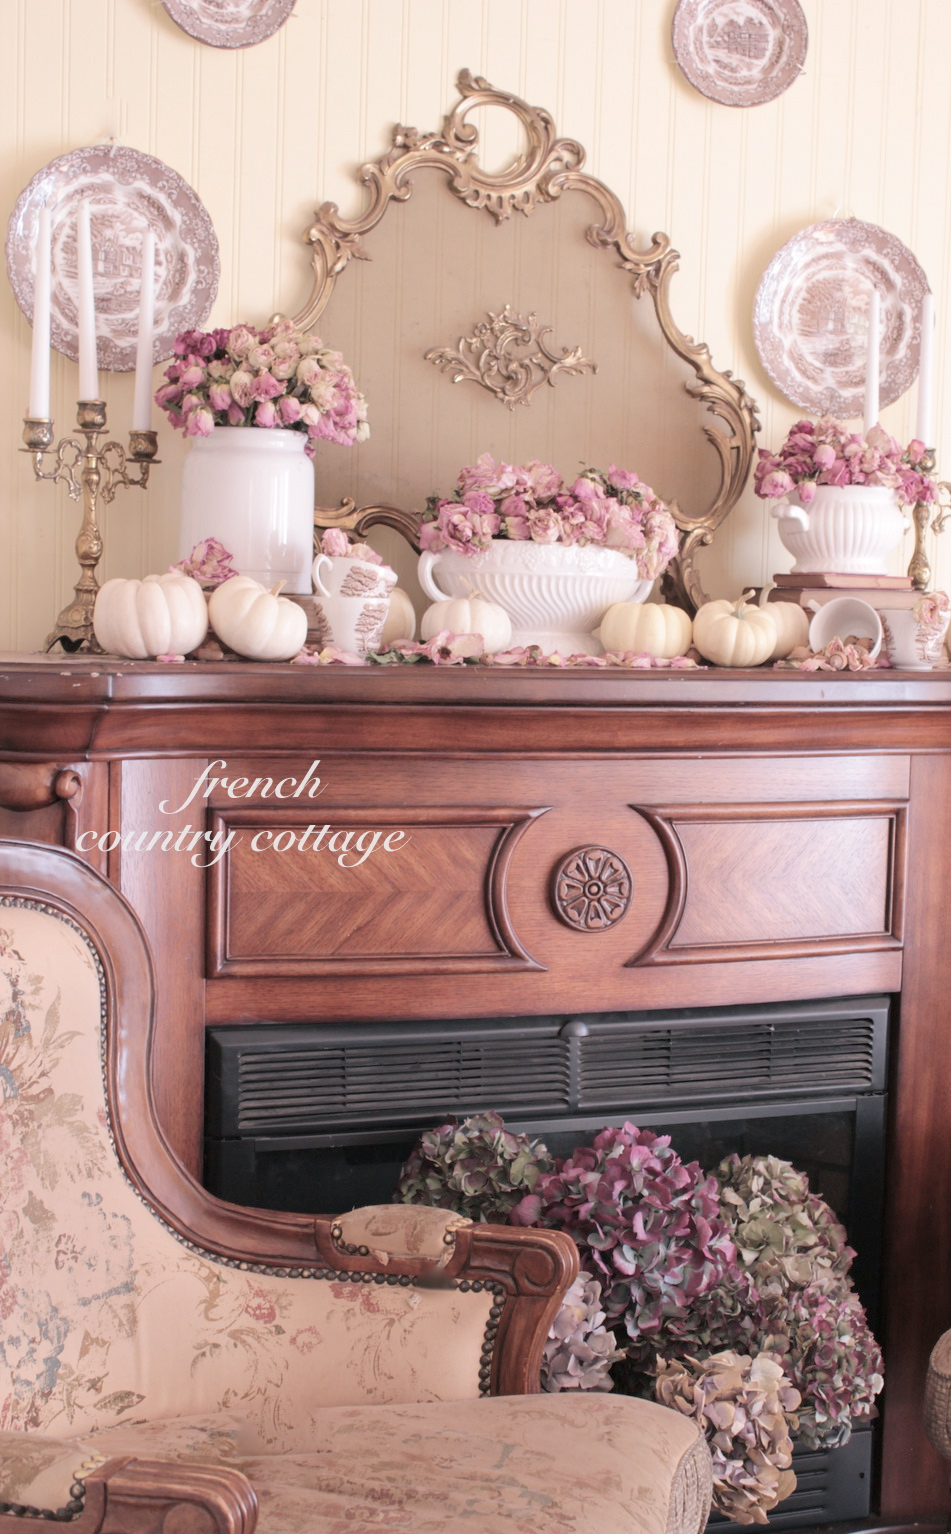 Autumn at french country cottage french country cottage for French country cottage design